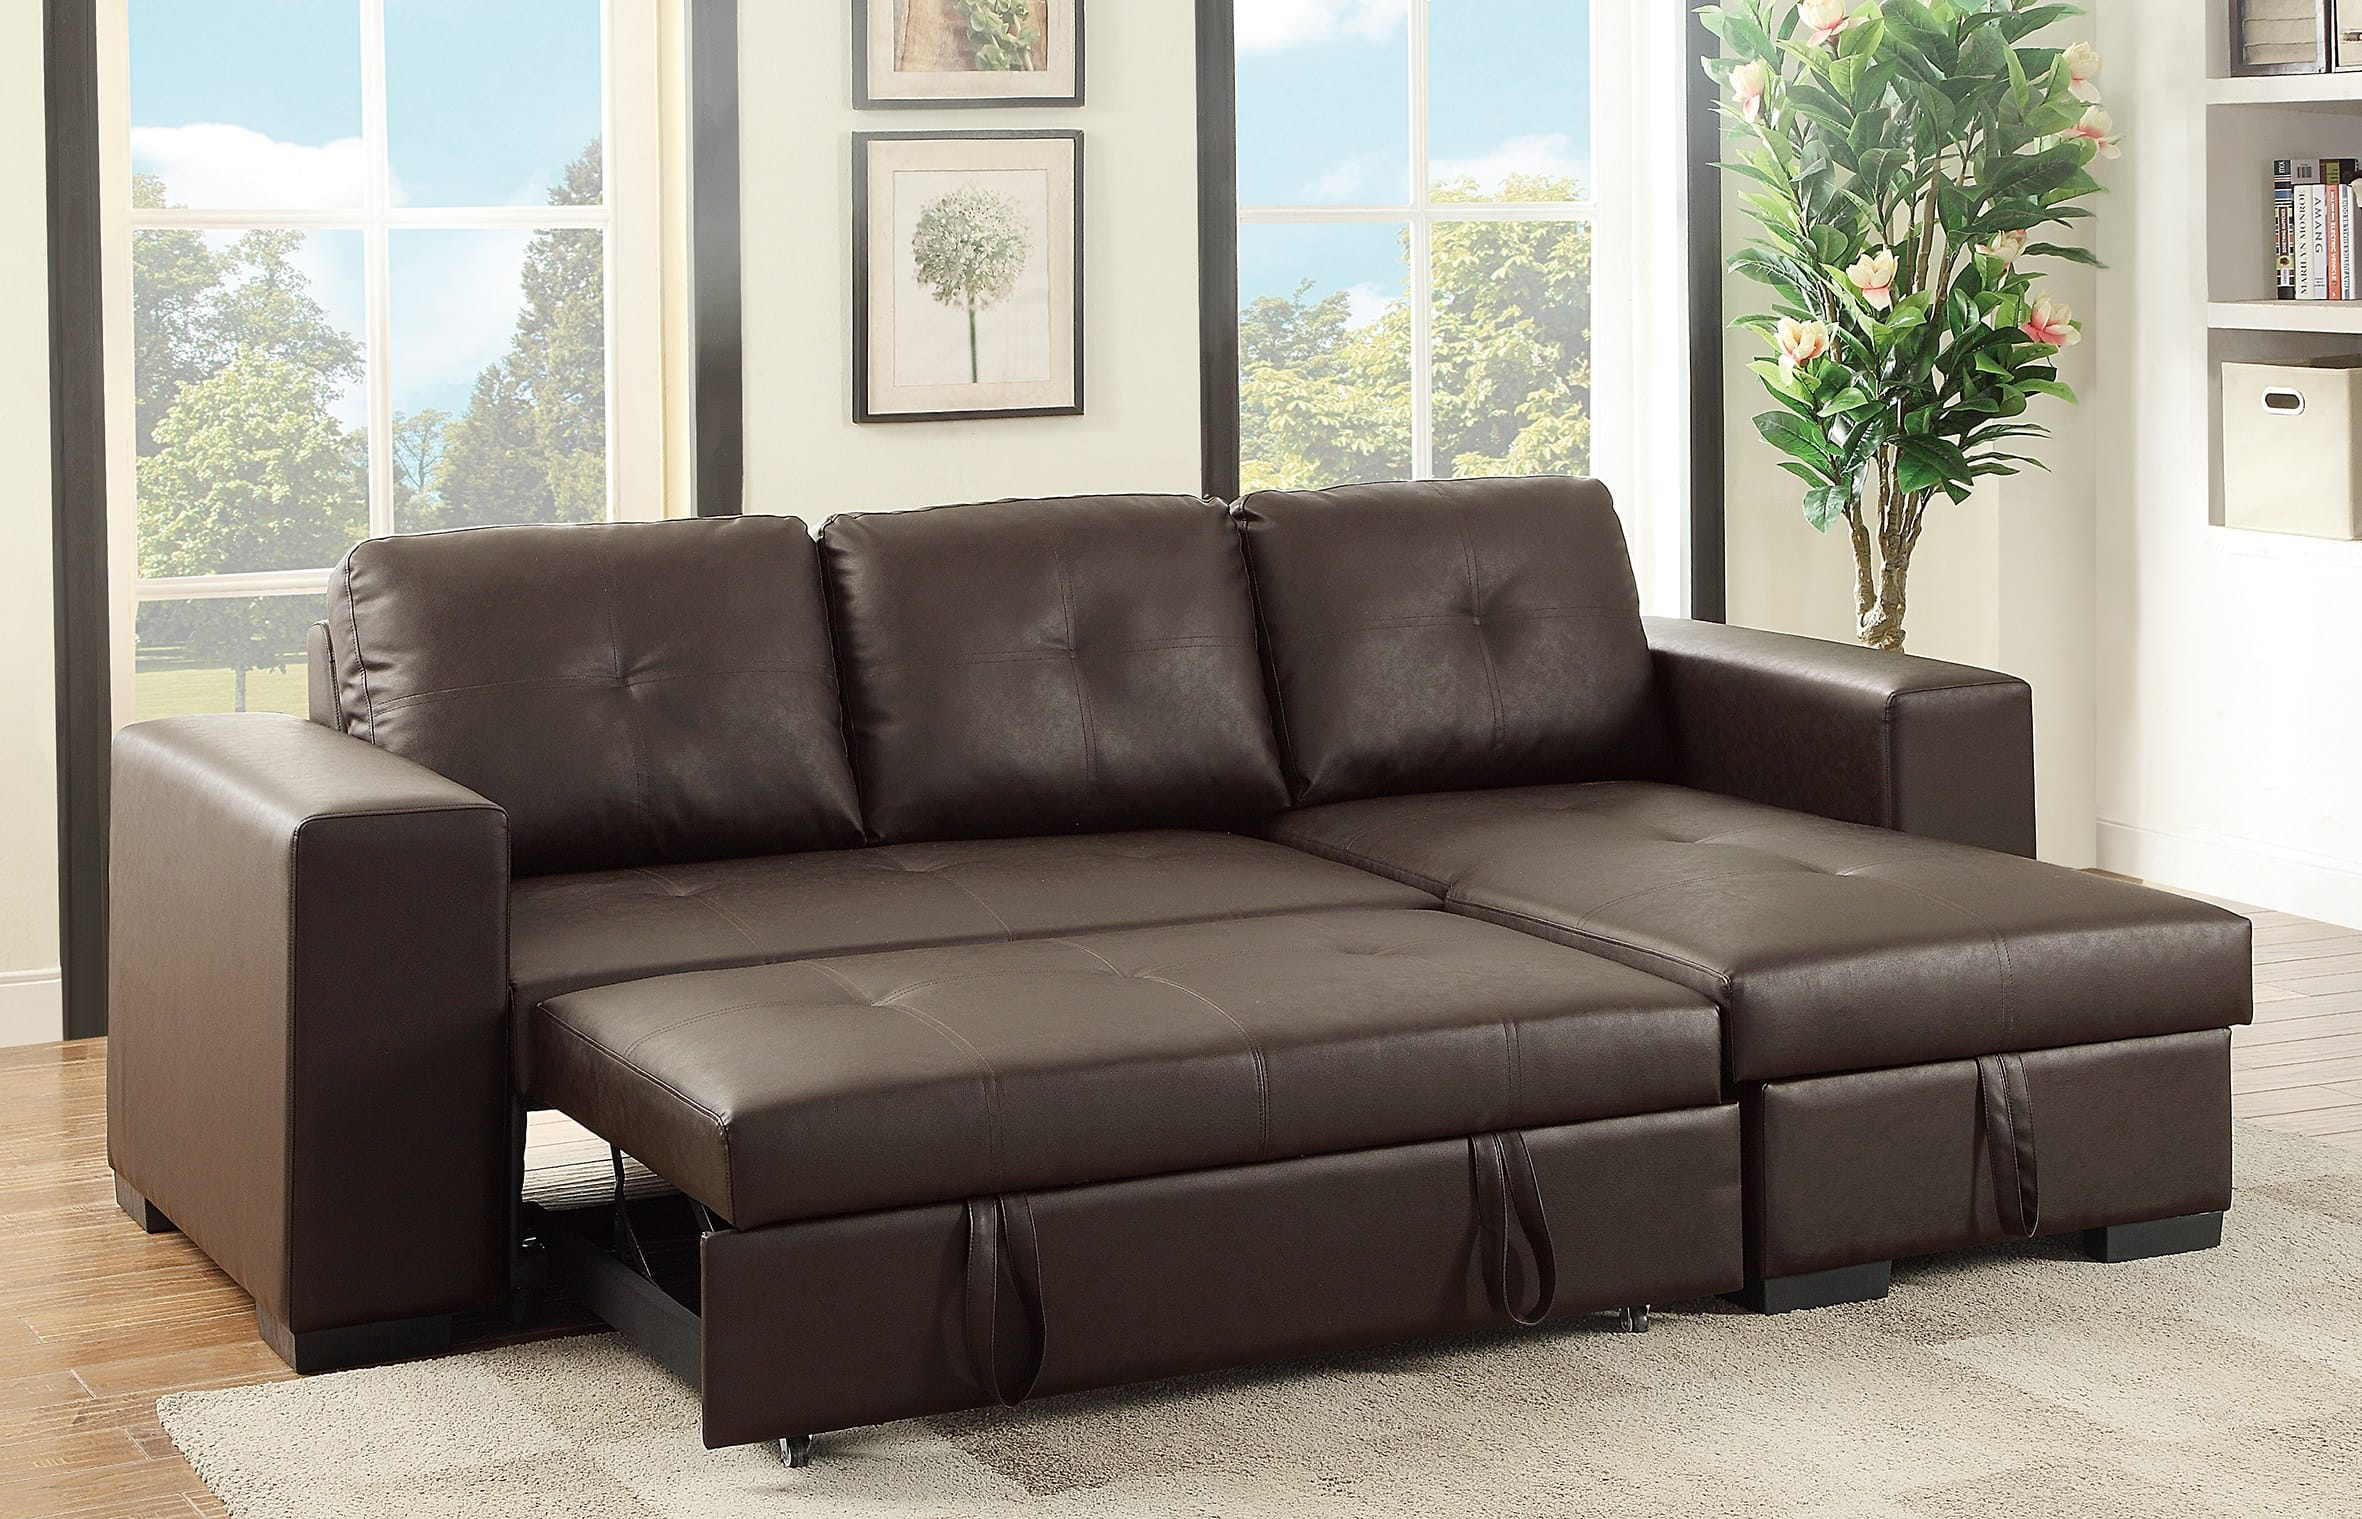 F6930 espresso convertible sectional sofa by poundex for Chaise lounge convertible bed